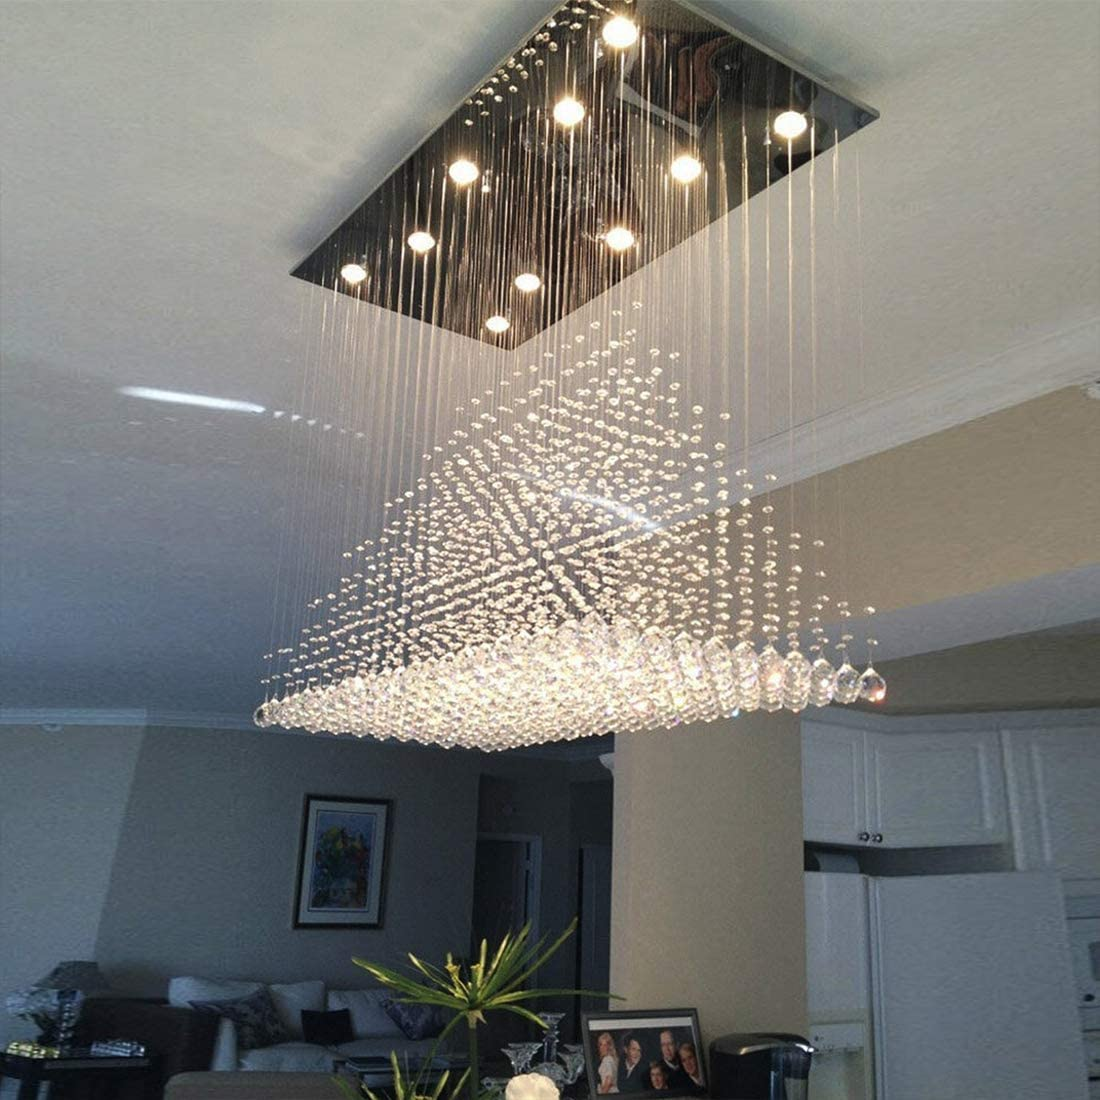 Moooni Modern Rectangular Raindrop Crystal Ceiling Lighting Fixture Pendant Chandelier LED Light for Dining Rooms Rectangle Chandeliers L40 x W20 x H36